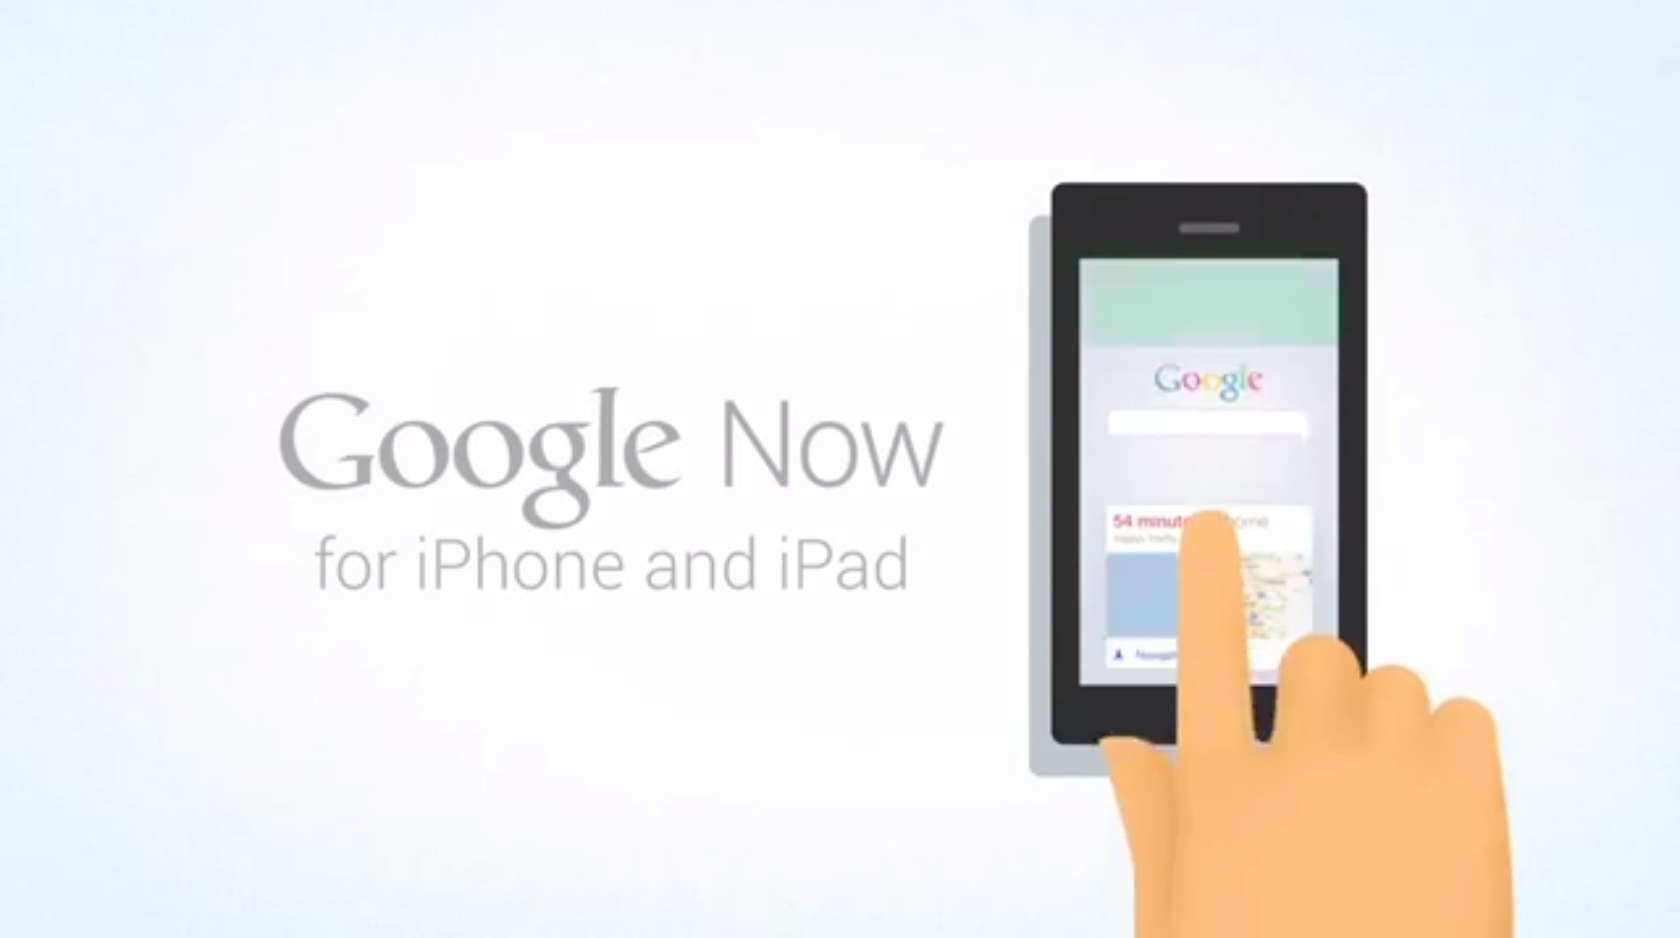 Google Now on iOS, Techbuzzes